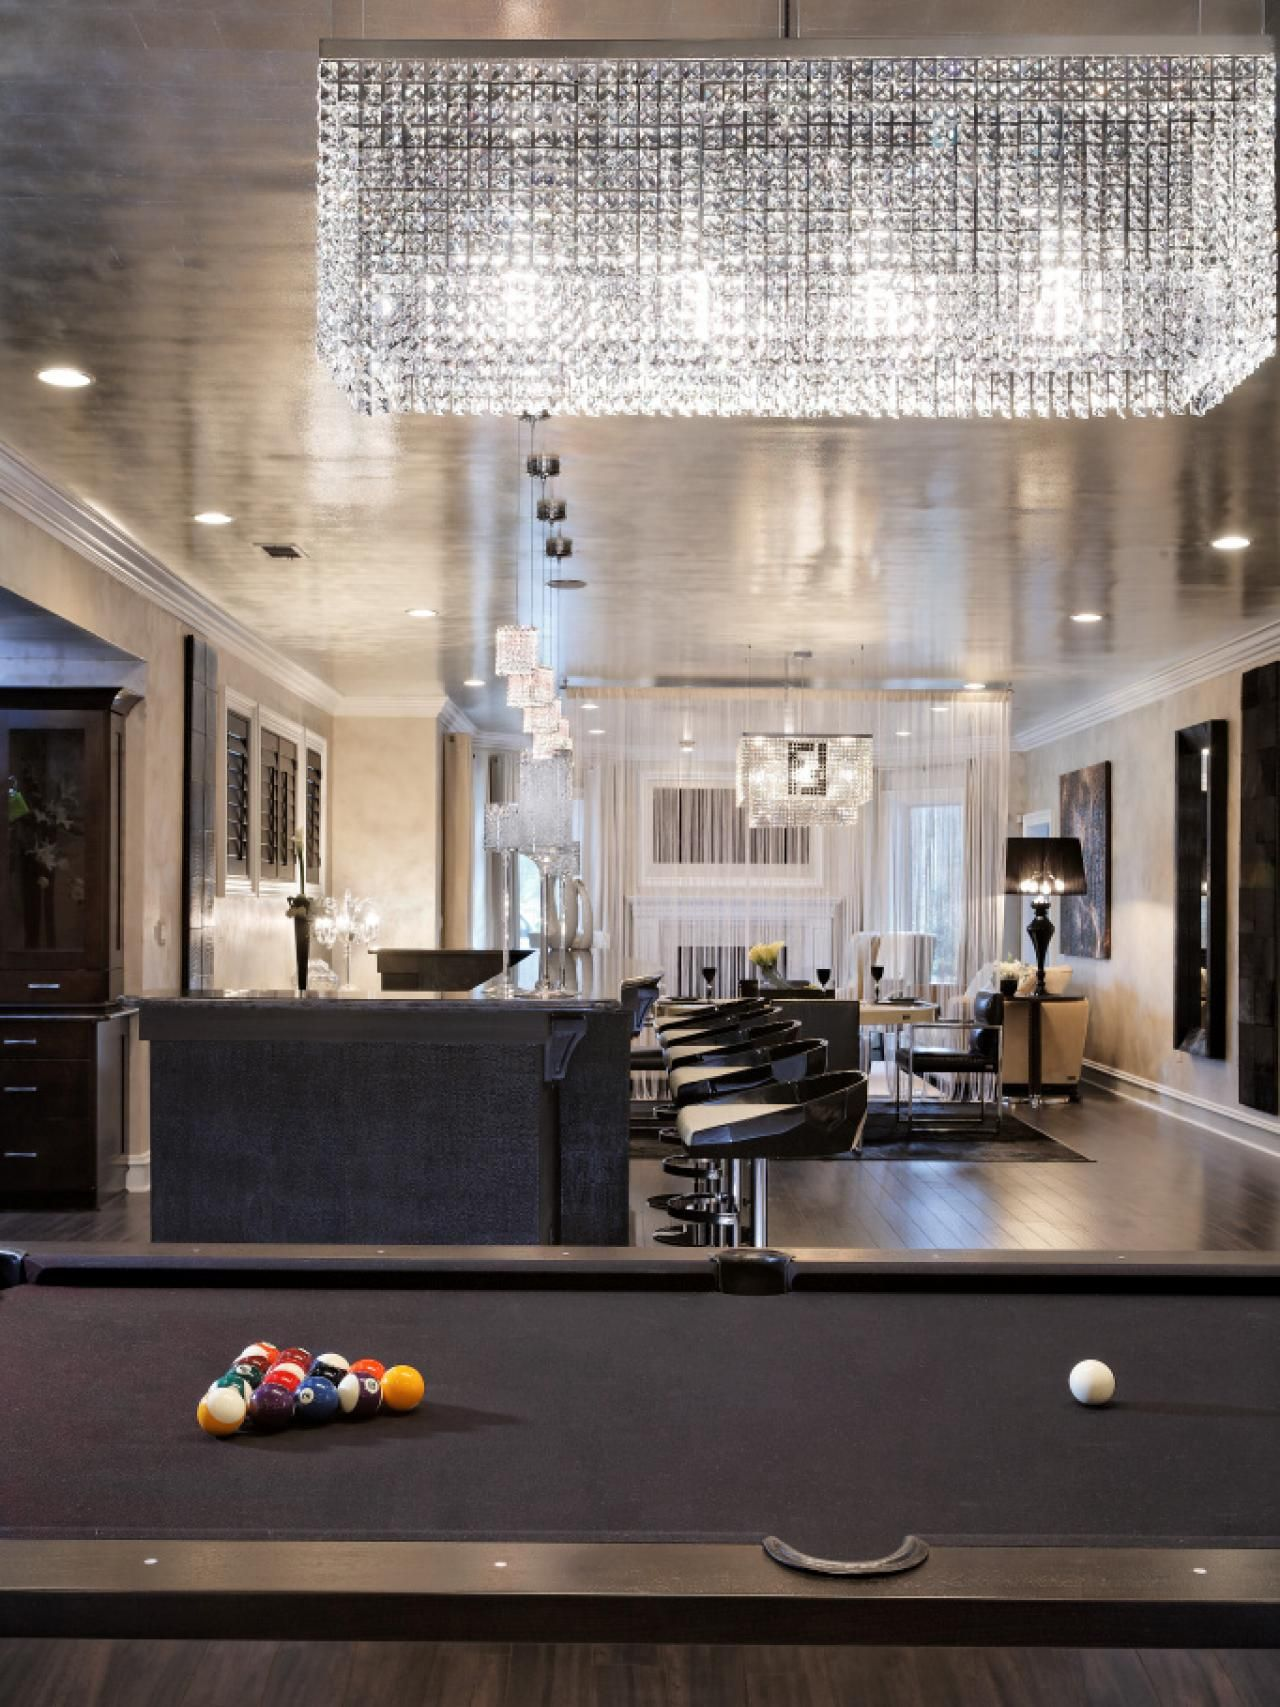 ... Dahlia Mahmood Took The Glamour Up A Notch With This Elegant Basement  Redesign Complete With A Pool Table, Bar Area And Swarovski Crystal  Chandeliers.